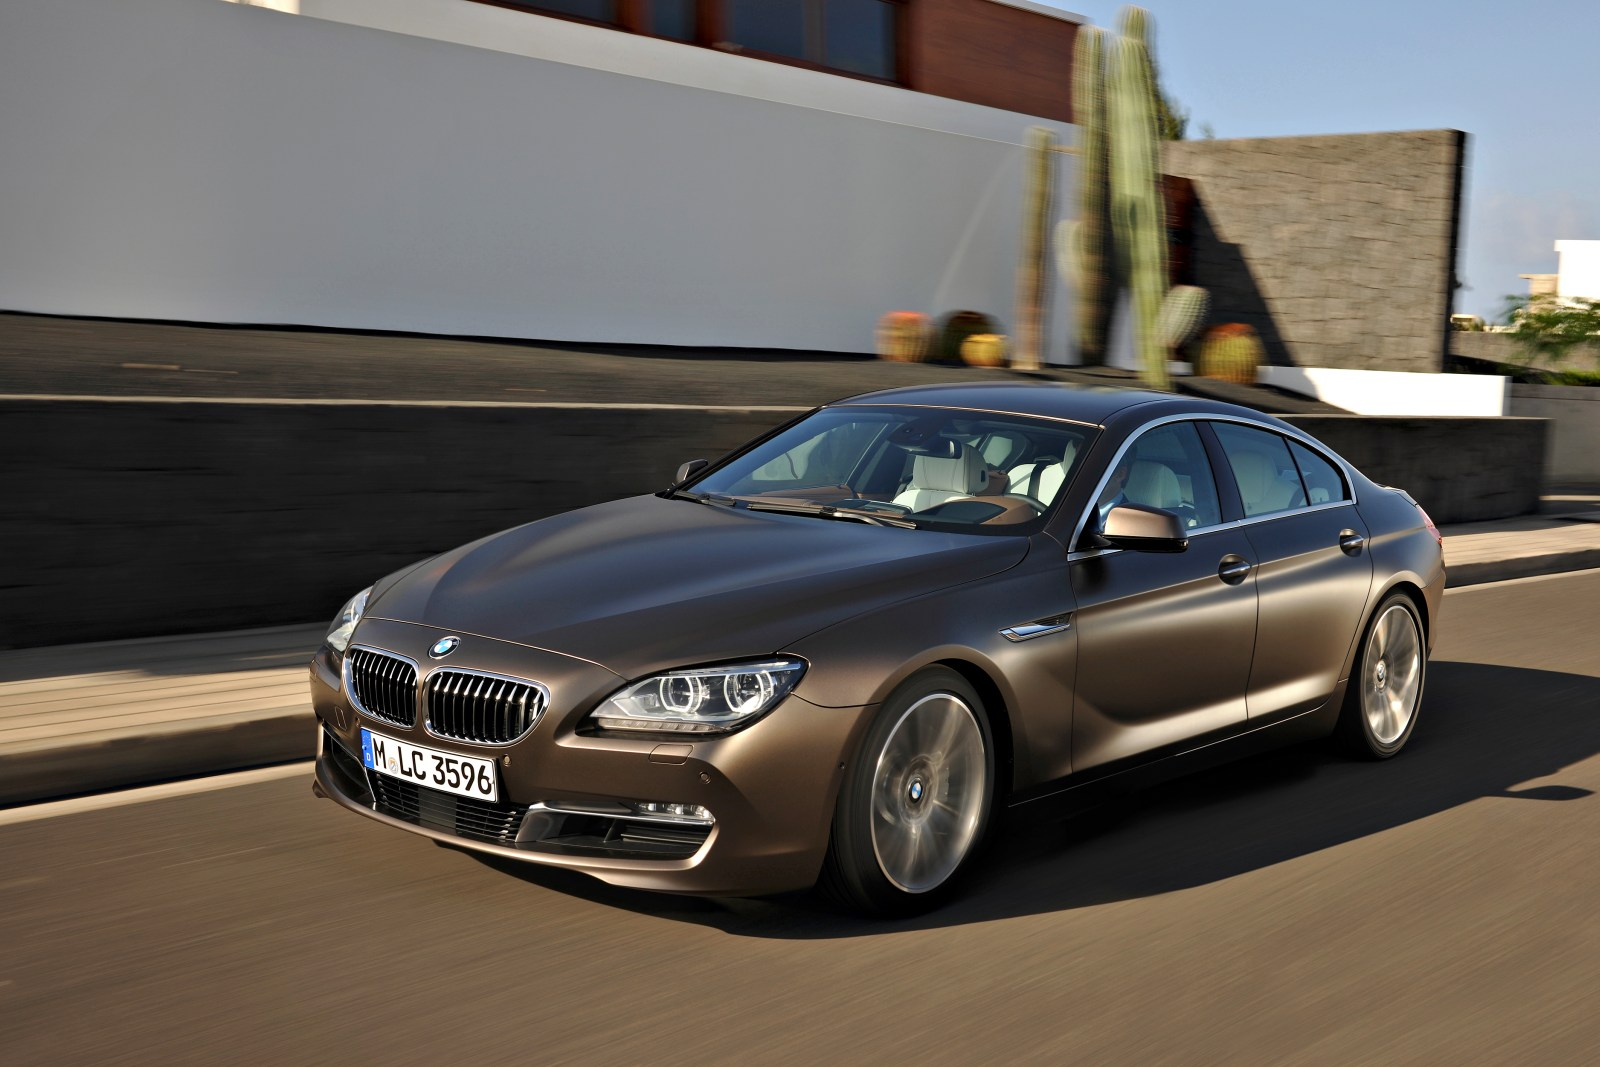 2019 BMW 6 Series Gran Coupe photo - 5